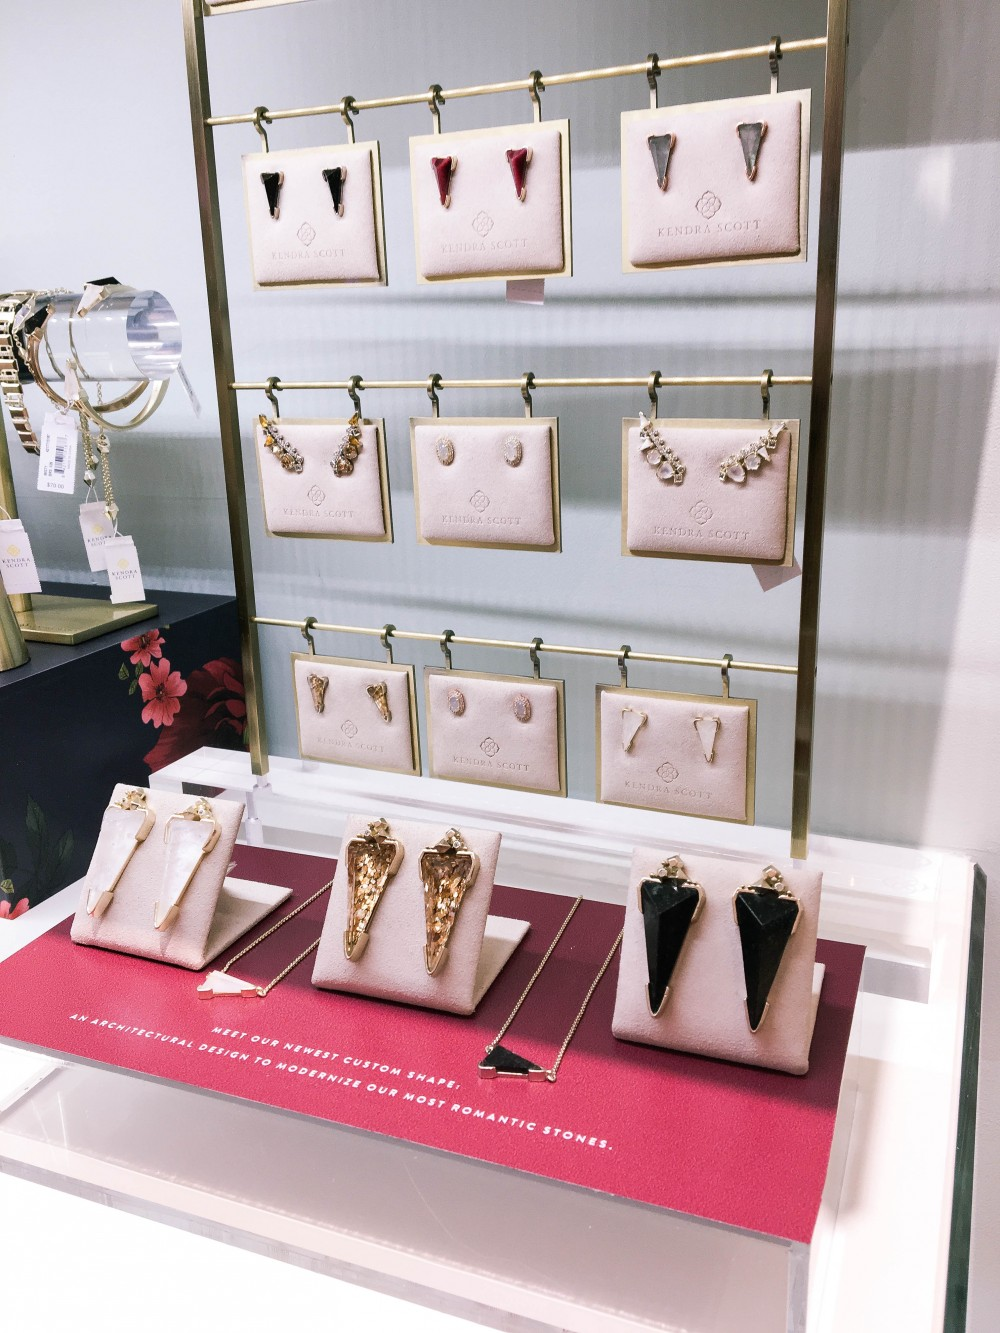 Kendra Scott Fall 2017 Launch Party-Kendra Scott Fall 2017 Collection-Whisk Away to Florence-Inspired by Italy-Bay Area Events-Santana Row-Have Need Want 6